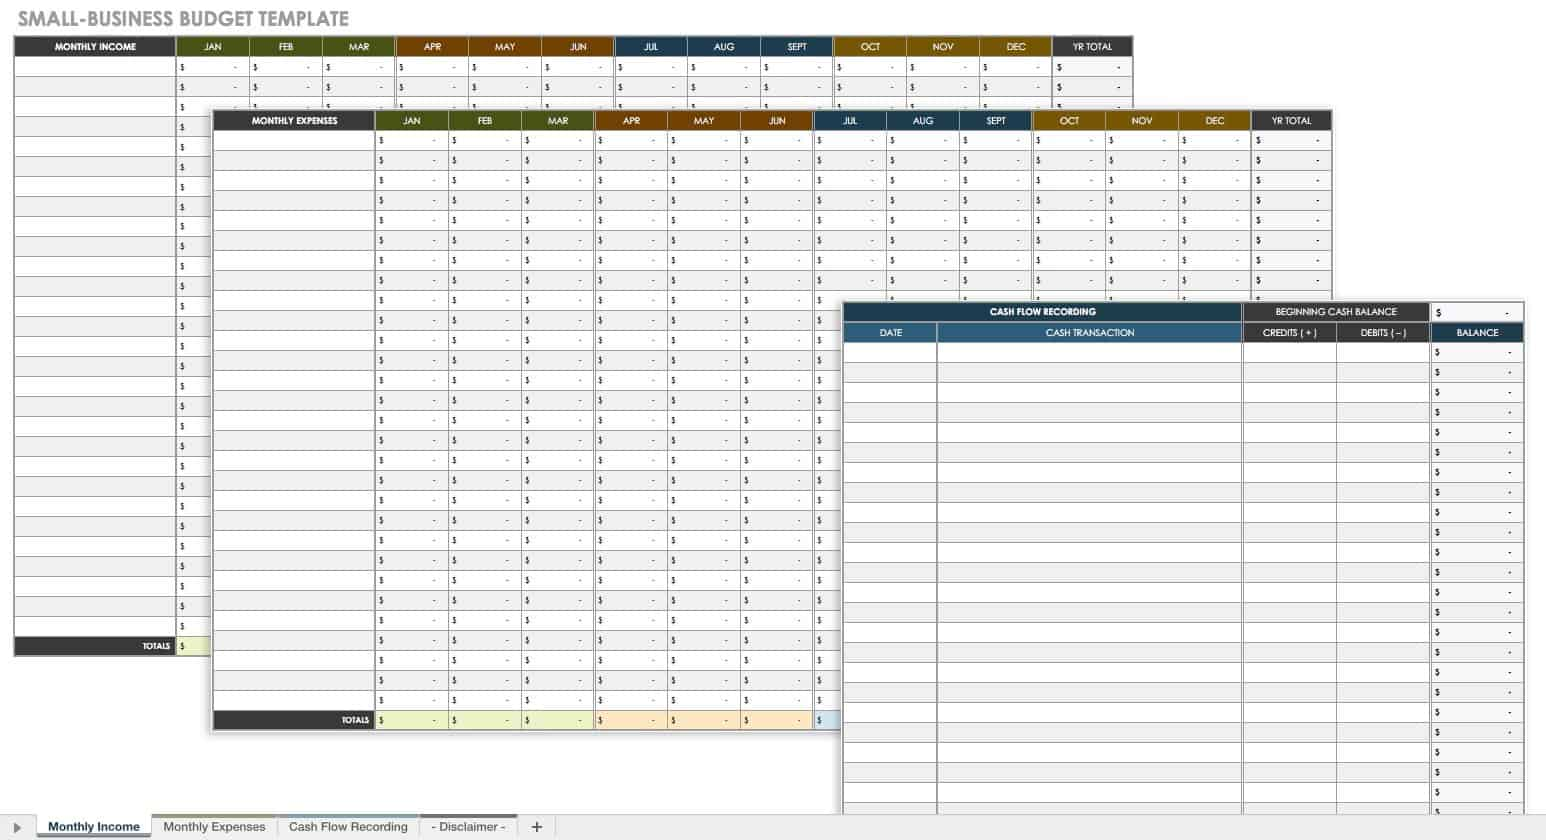 Small Business Annual Business Budget Template Excel